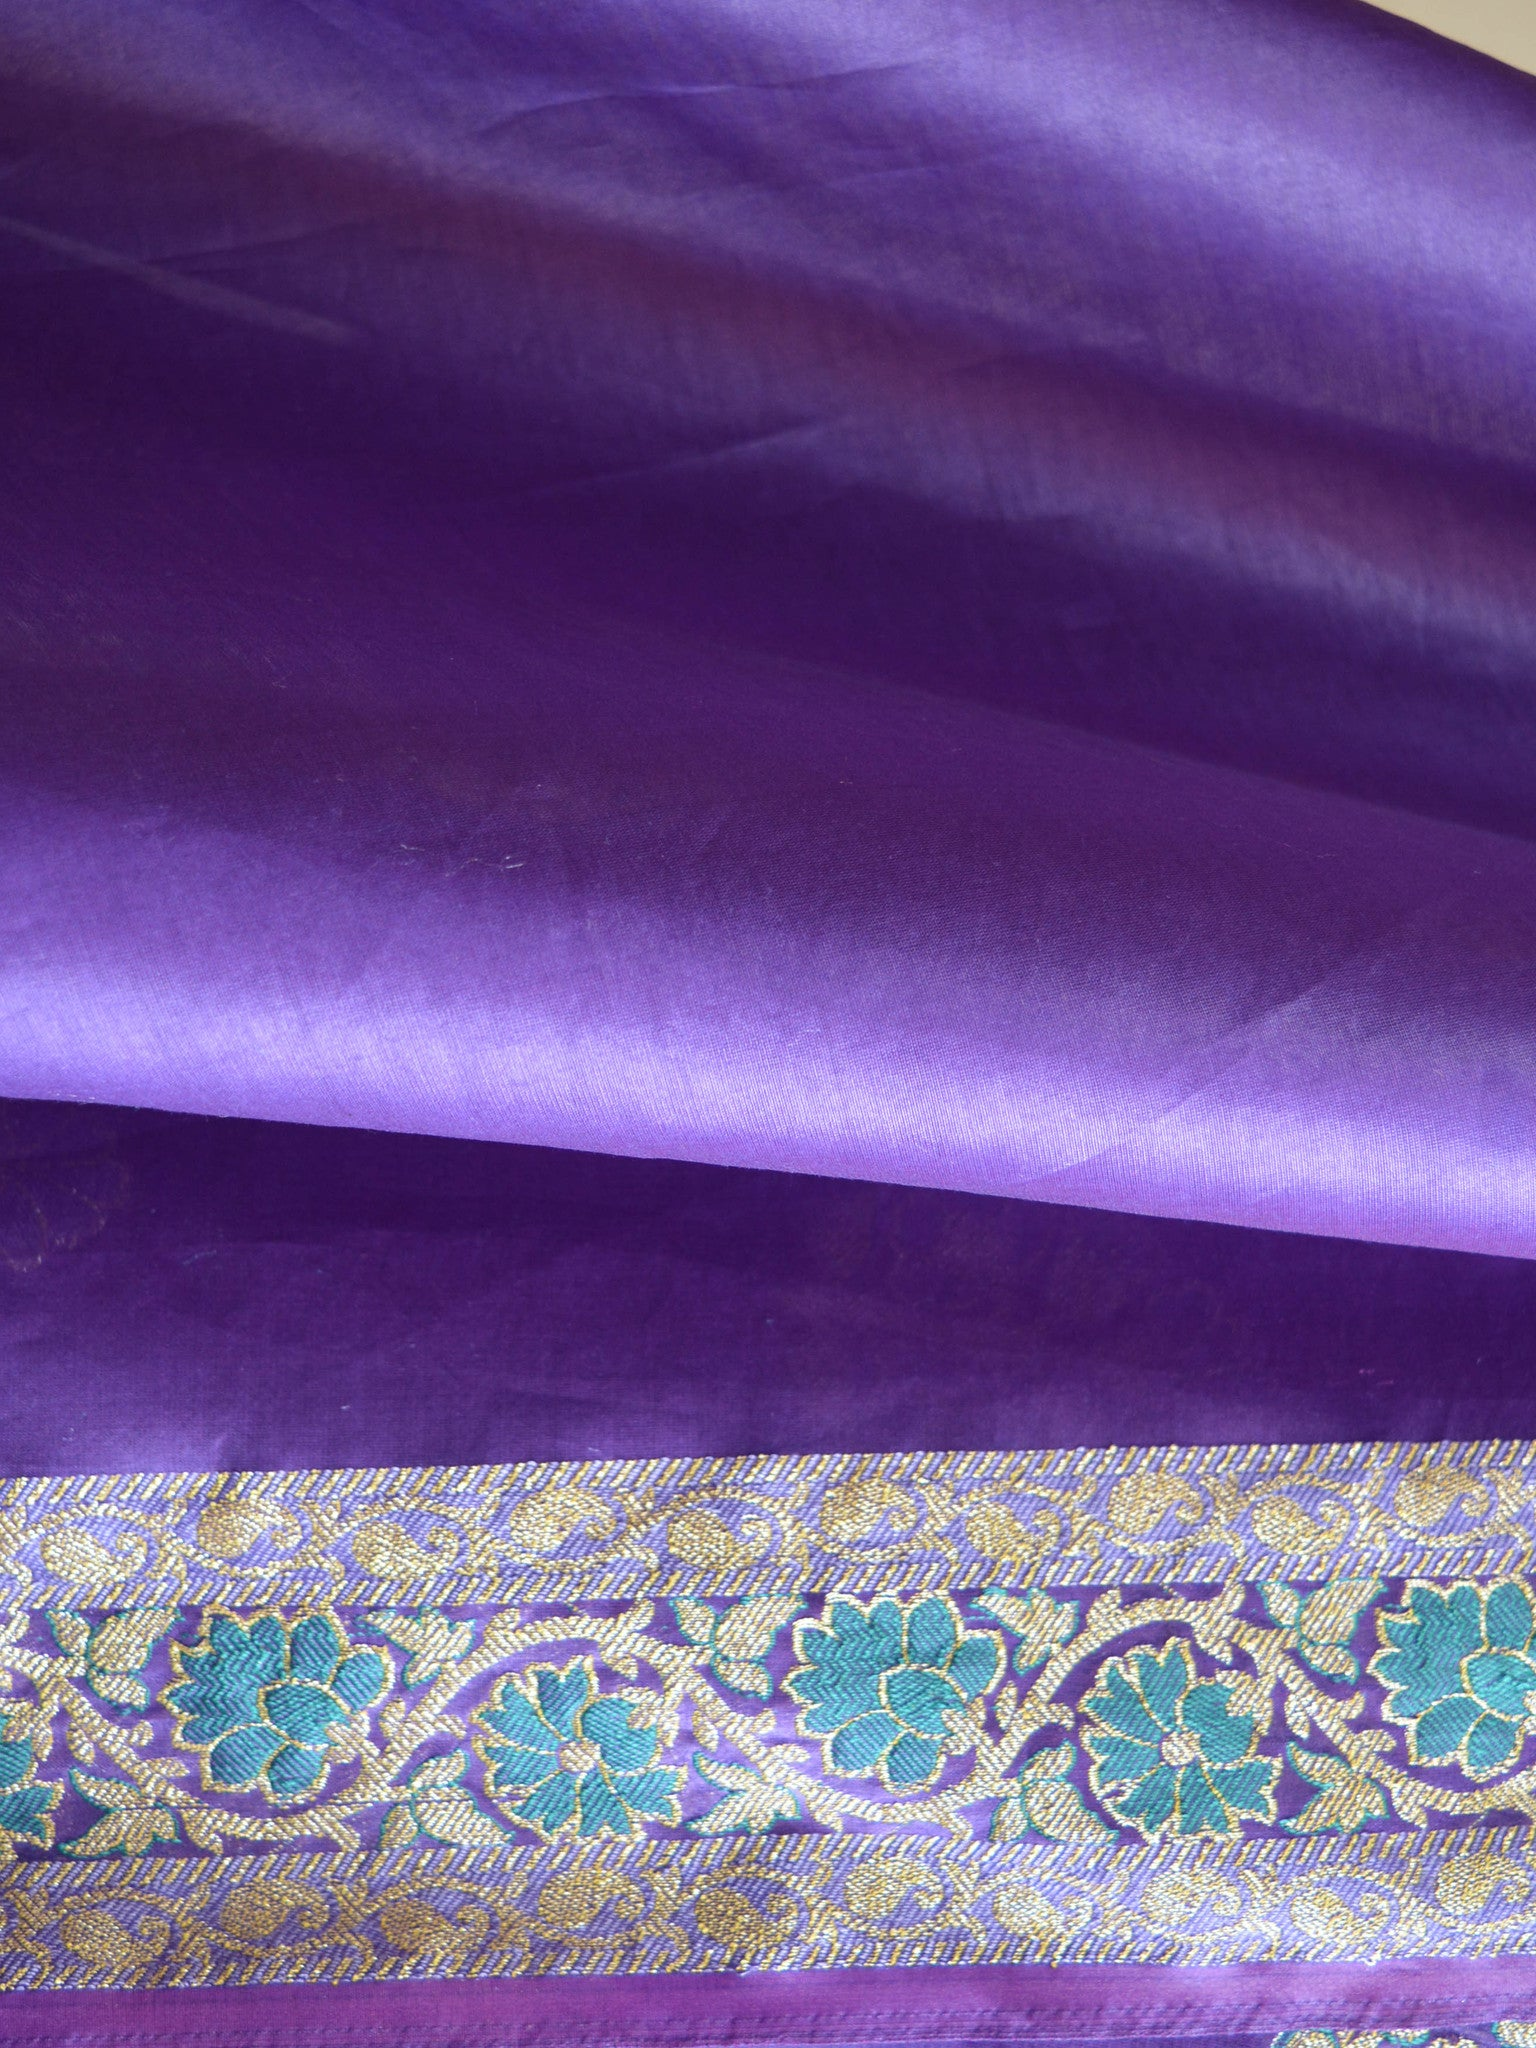 Banarasee/Banarasi Salwar Kameez Glossy Cotton Silk Woven Buti Fabric-Purple